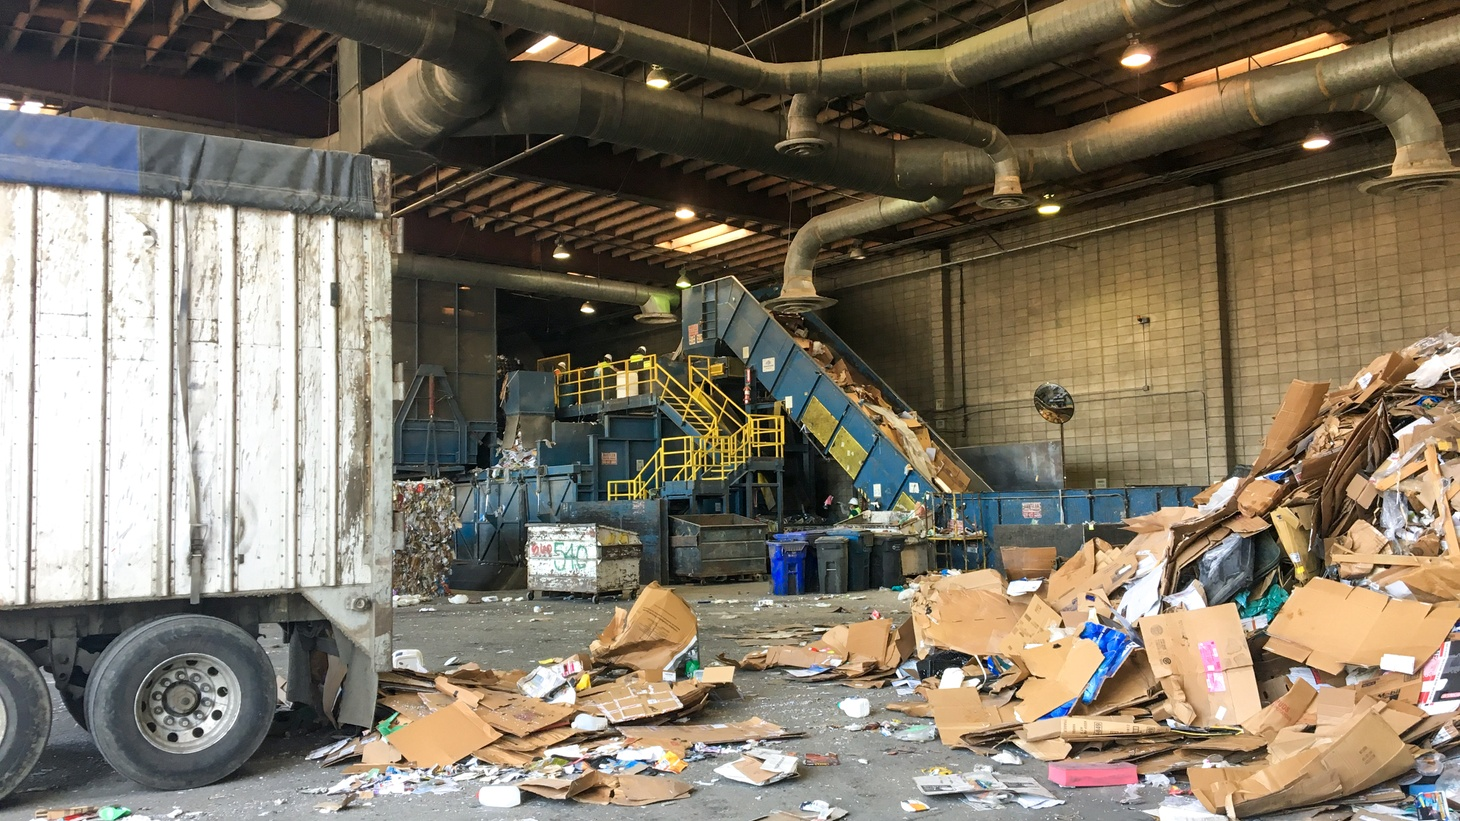 Burbank Recycling processes 100-120 tons of material each day. In recent years, cardboard has made up a growing proportion of materials, especially as consumers increasingly turn to online shopping.